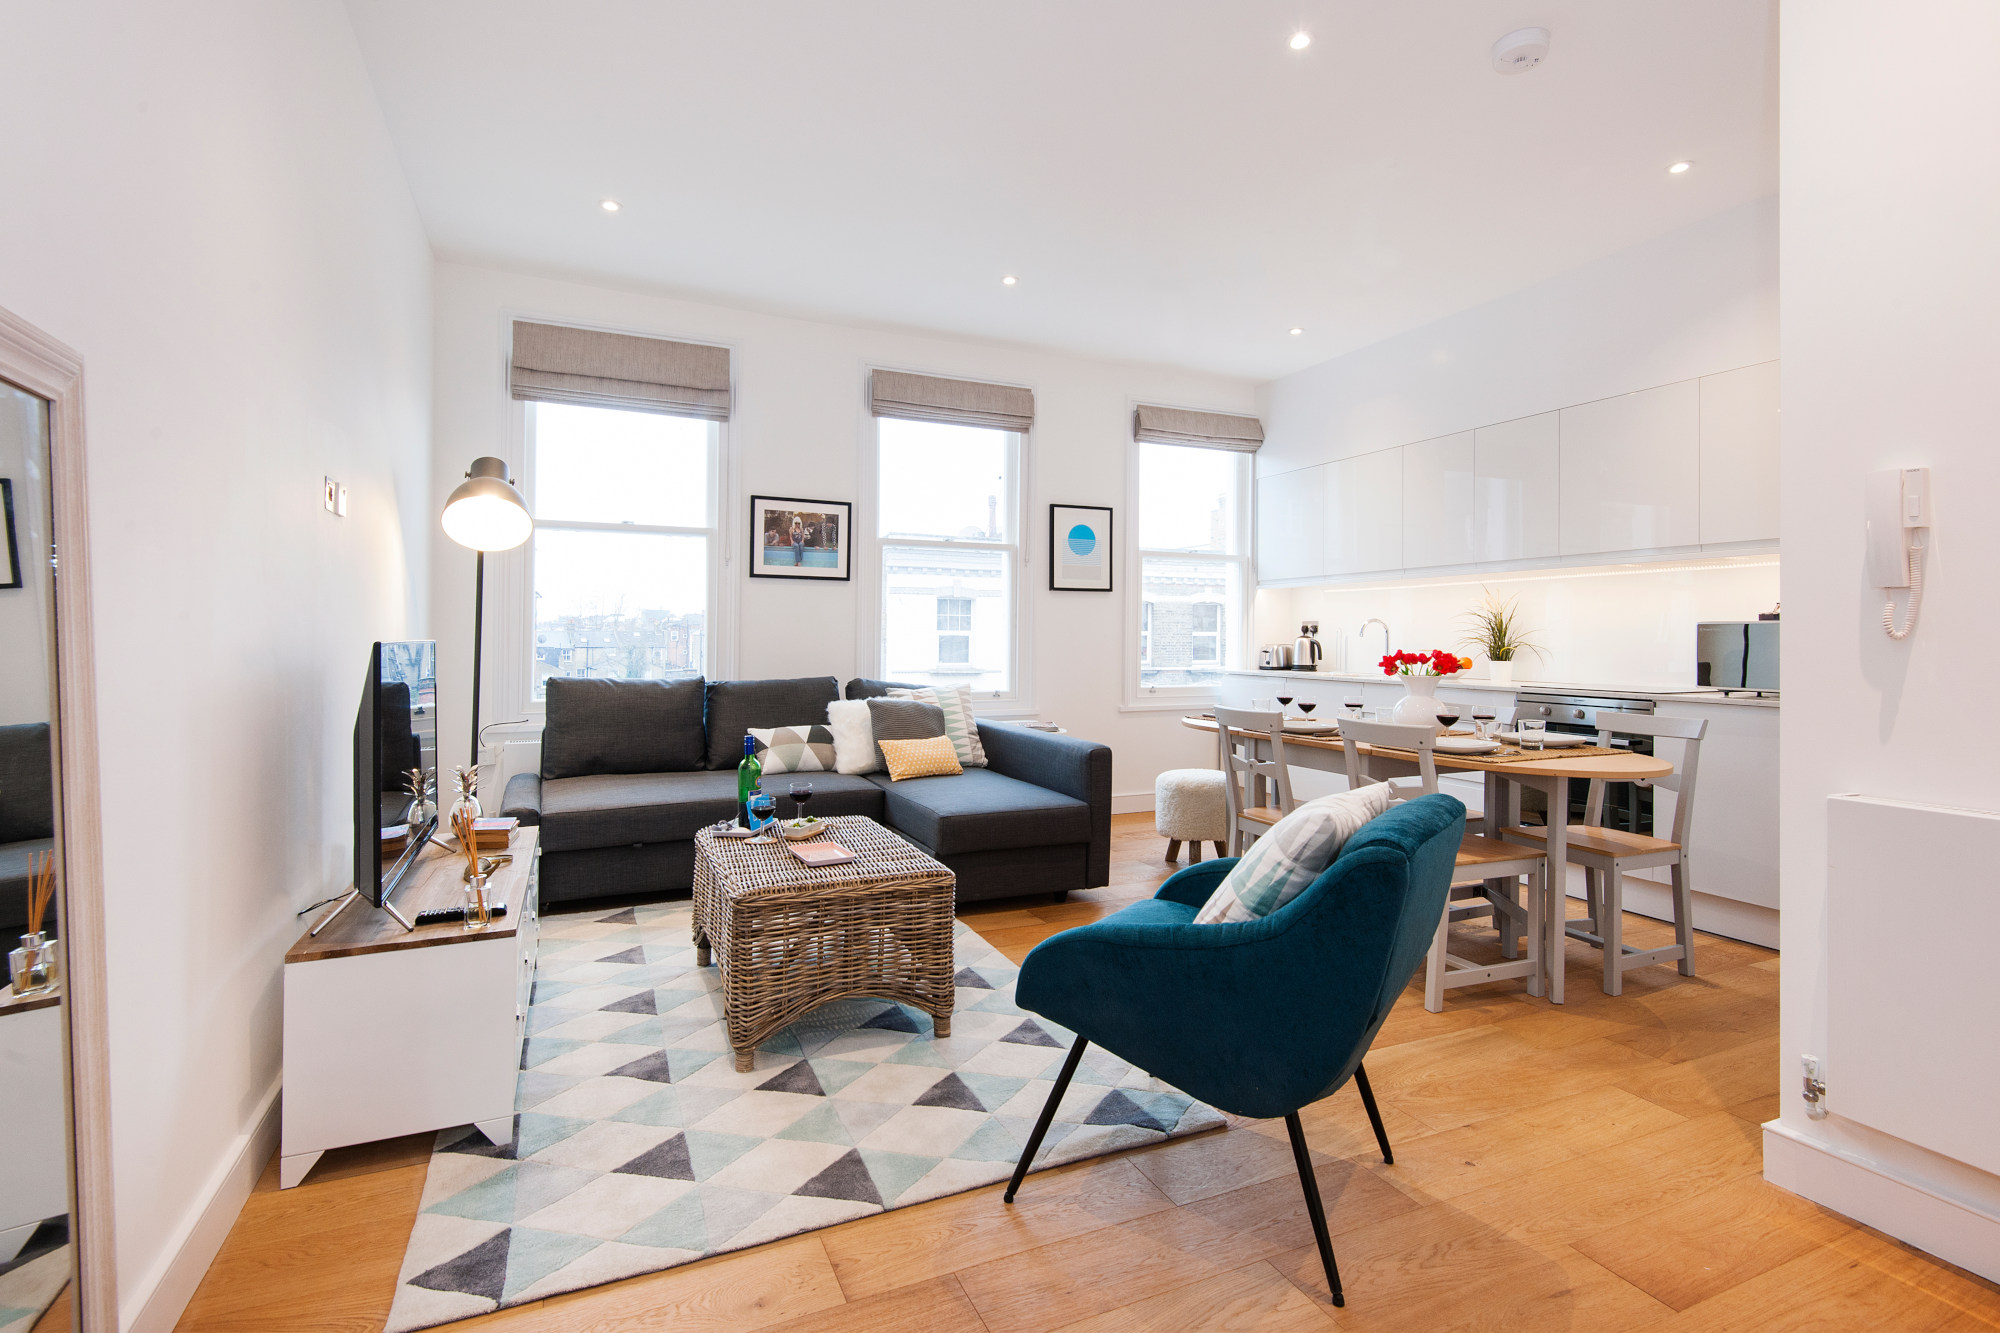 two bedroom family apartment london - living room